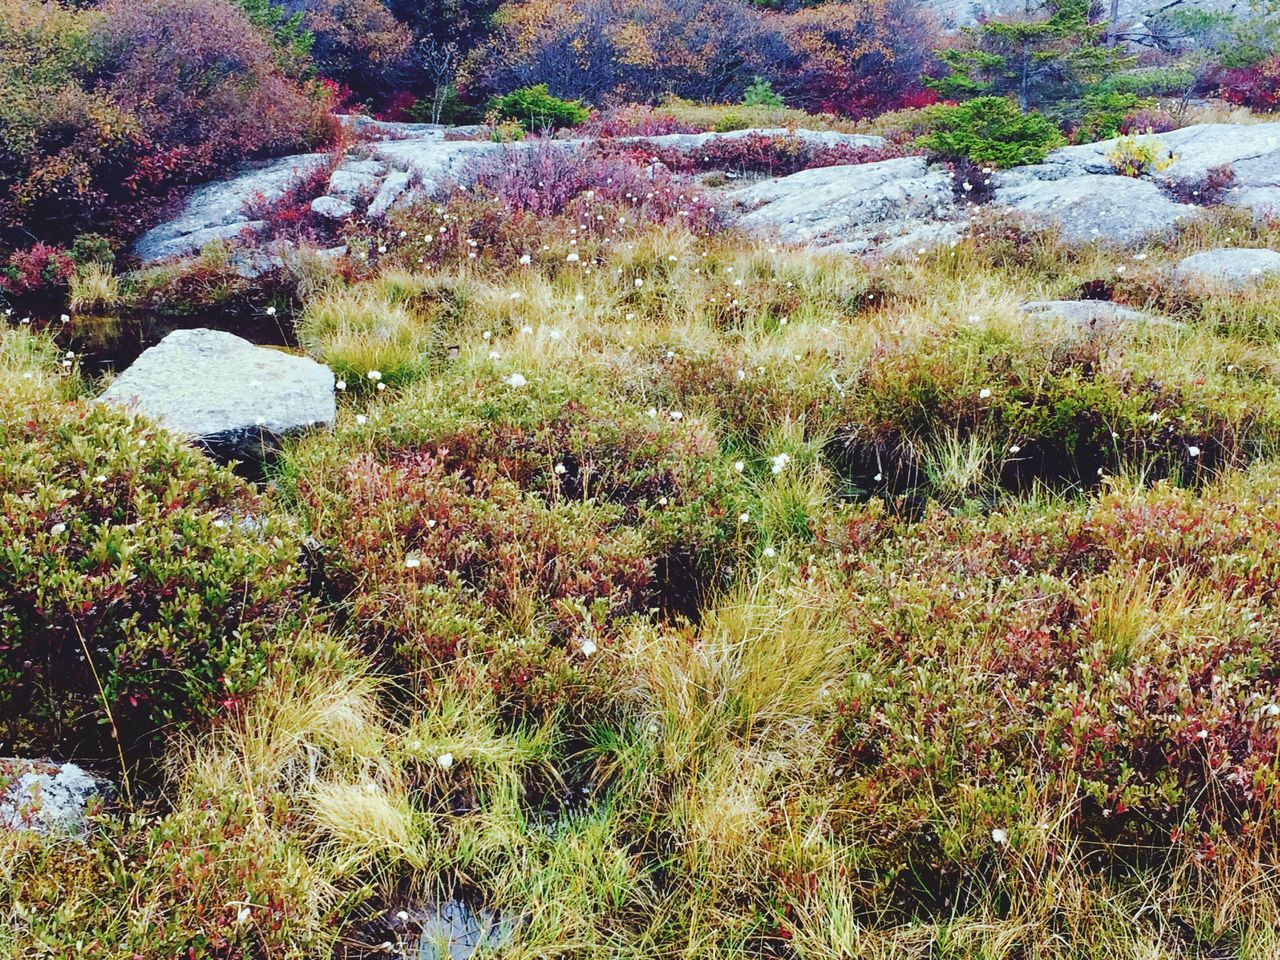 Nature Growth Beauty In Nature Outdoors No People Plant Grass Day Tranquil Scene Tranquility Scenics Flower Close-up Mountain Mount Monadnock Fall Autumn